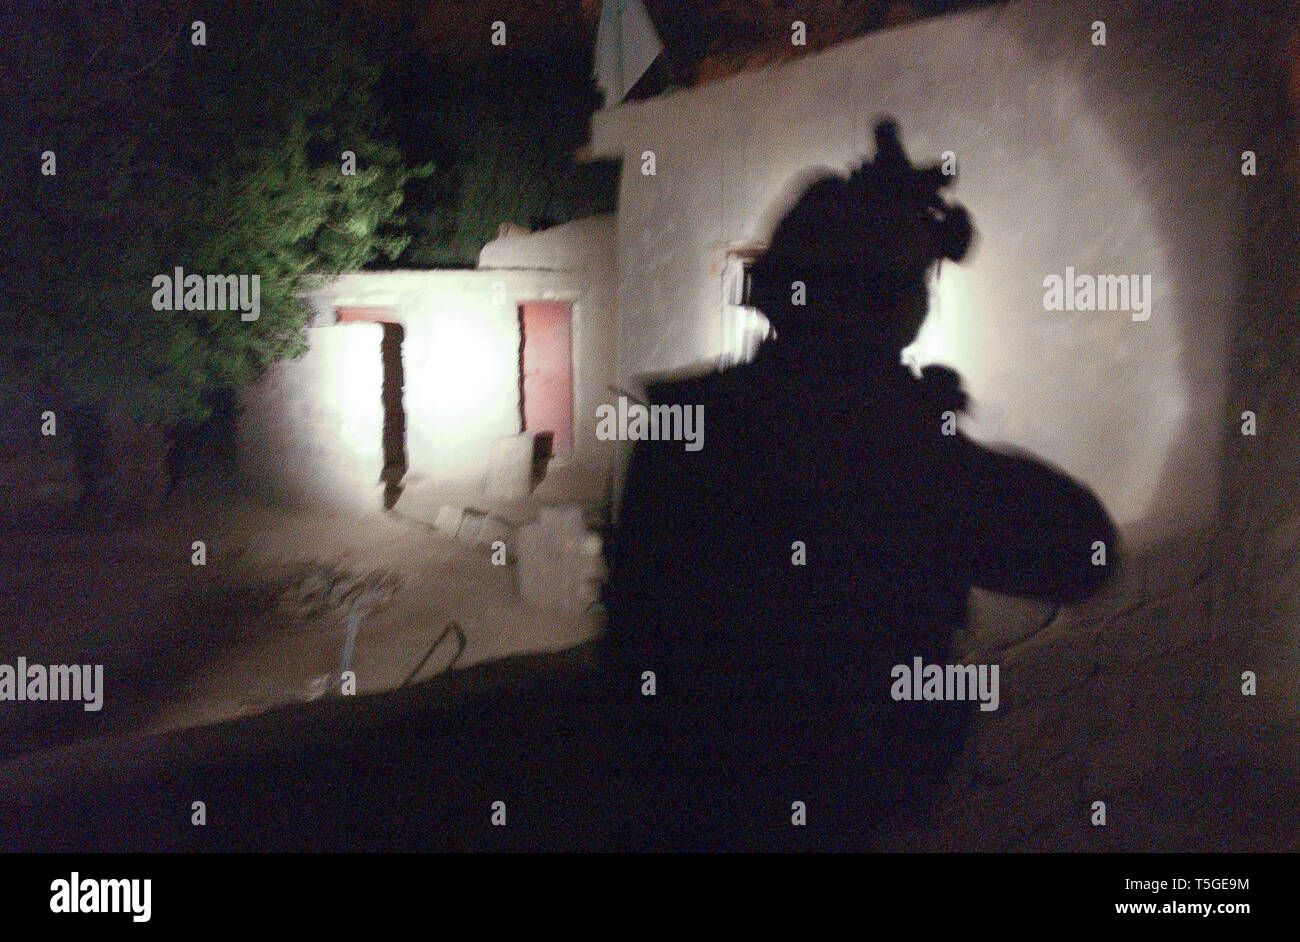 Baghdad, Baghdad, Iraq. 16th Apr, 2004. A soldier from Delta Company, 1st Battalion, 8th Cavalry Regiment shines a spot light into the home of a resident following an Improvised Explosive Device south of Baghdad, April 16, 2004. Credit: Bill Putnam/ZUMA Wire/Alamy Live News Stock Photo